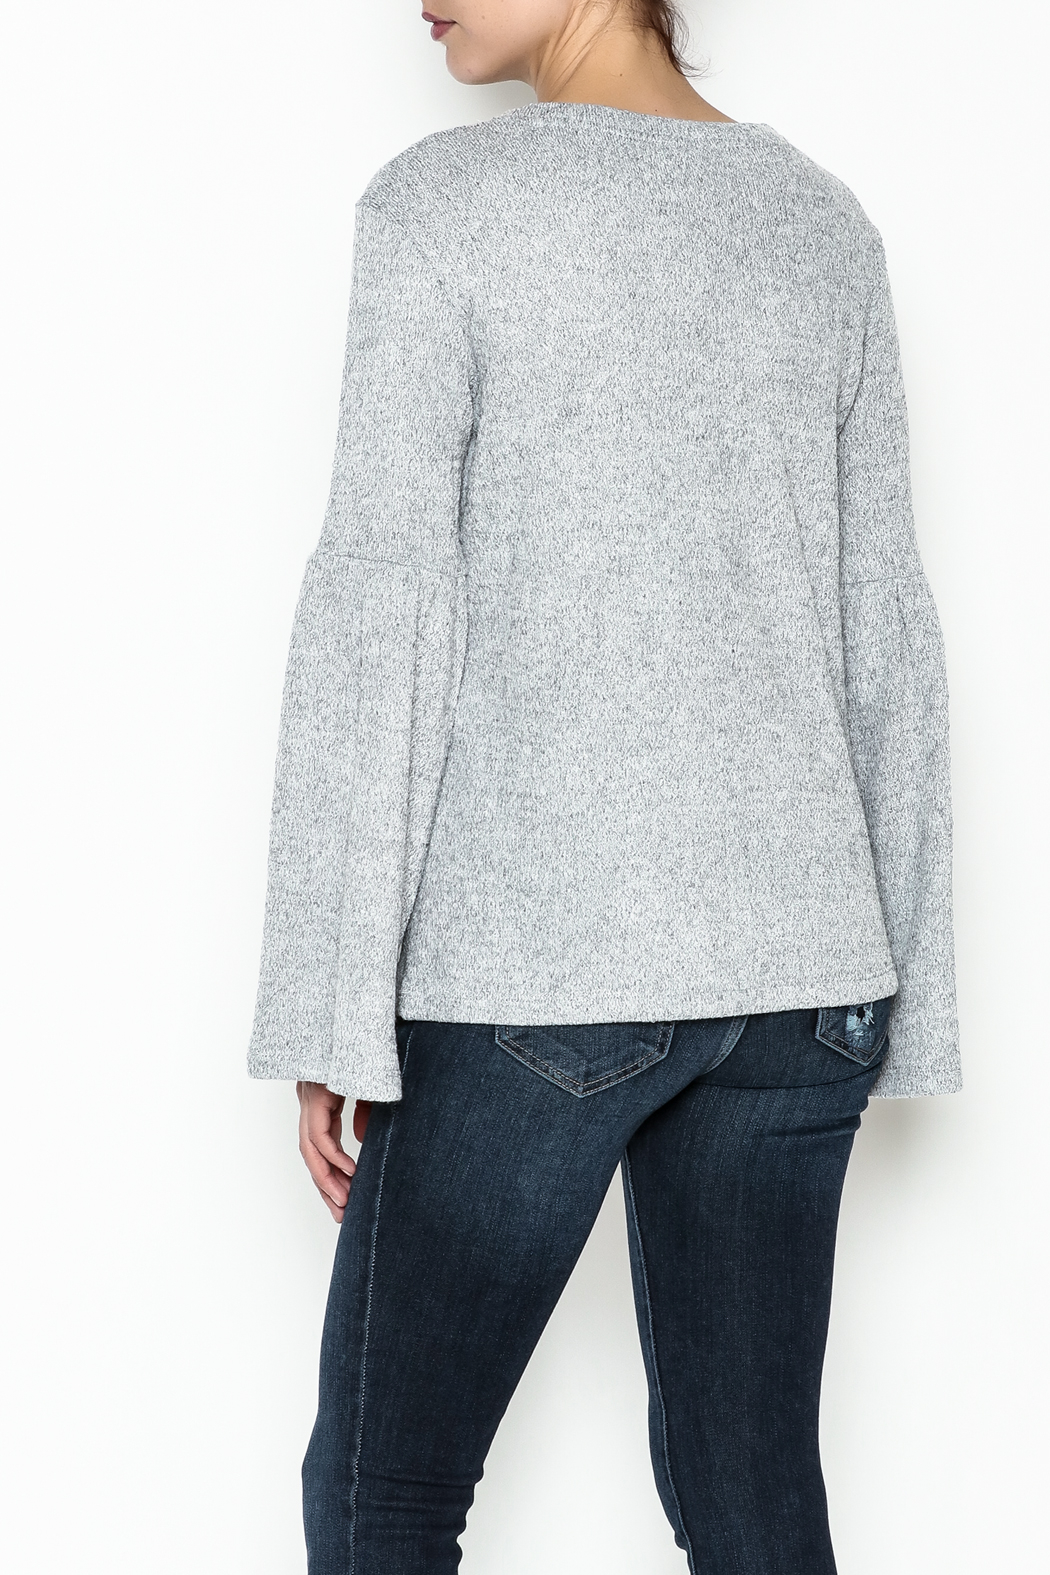 WREN & WILLA Bell Sleeve Sweater - Back Cropped Image